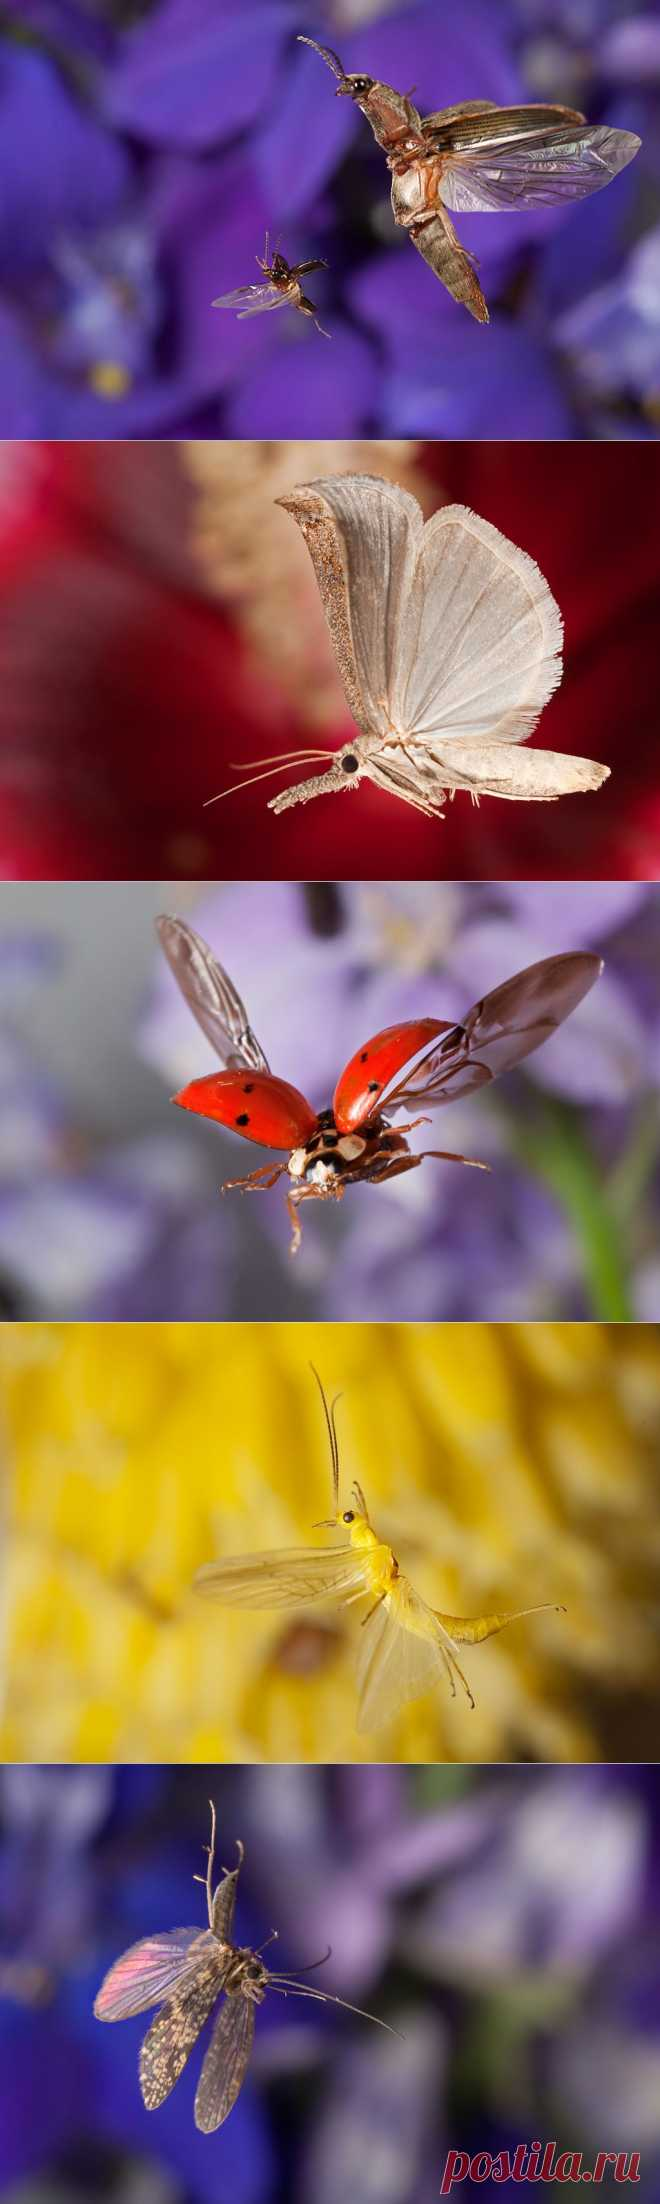 Insects in flight | Naked Science